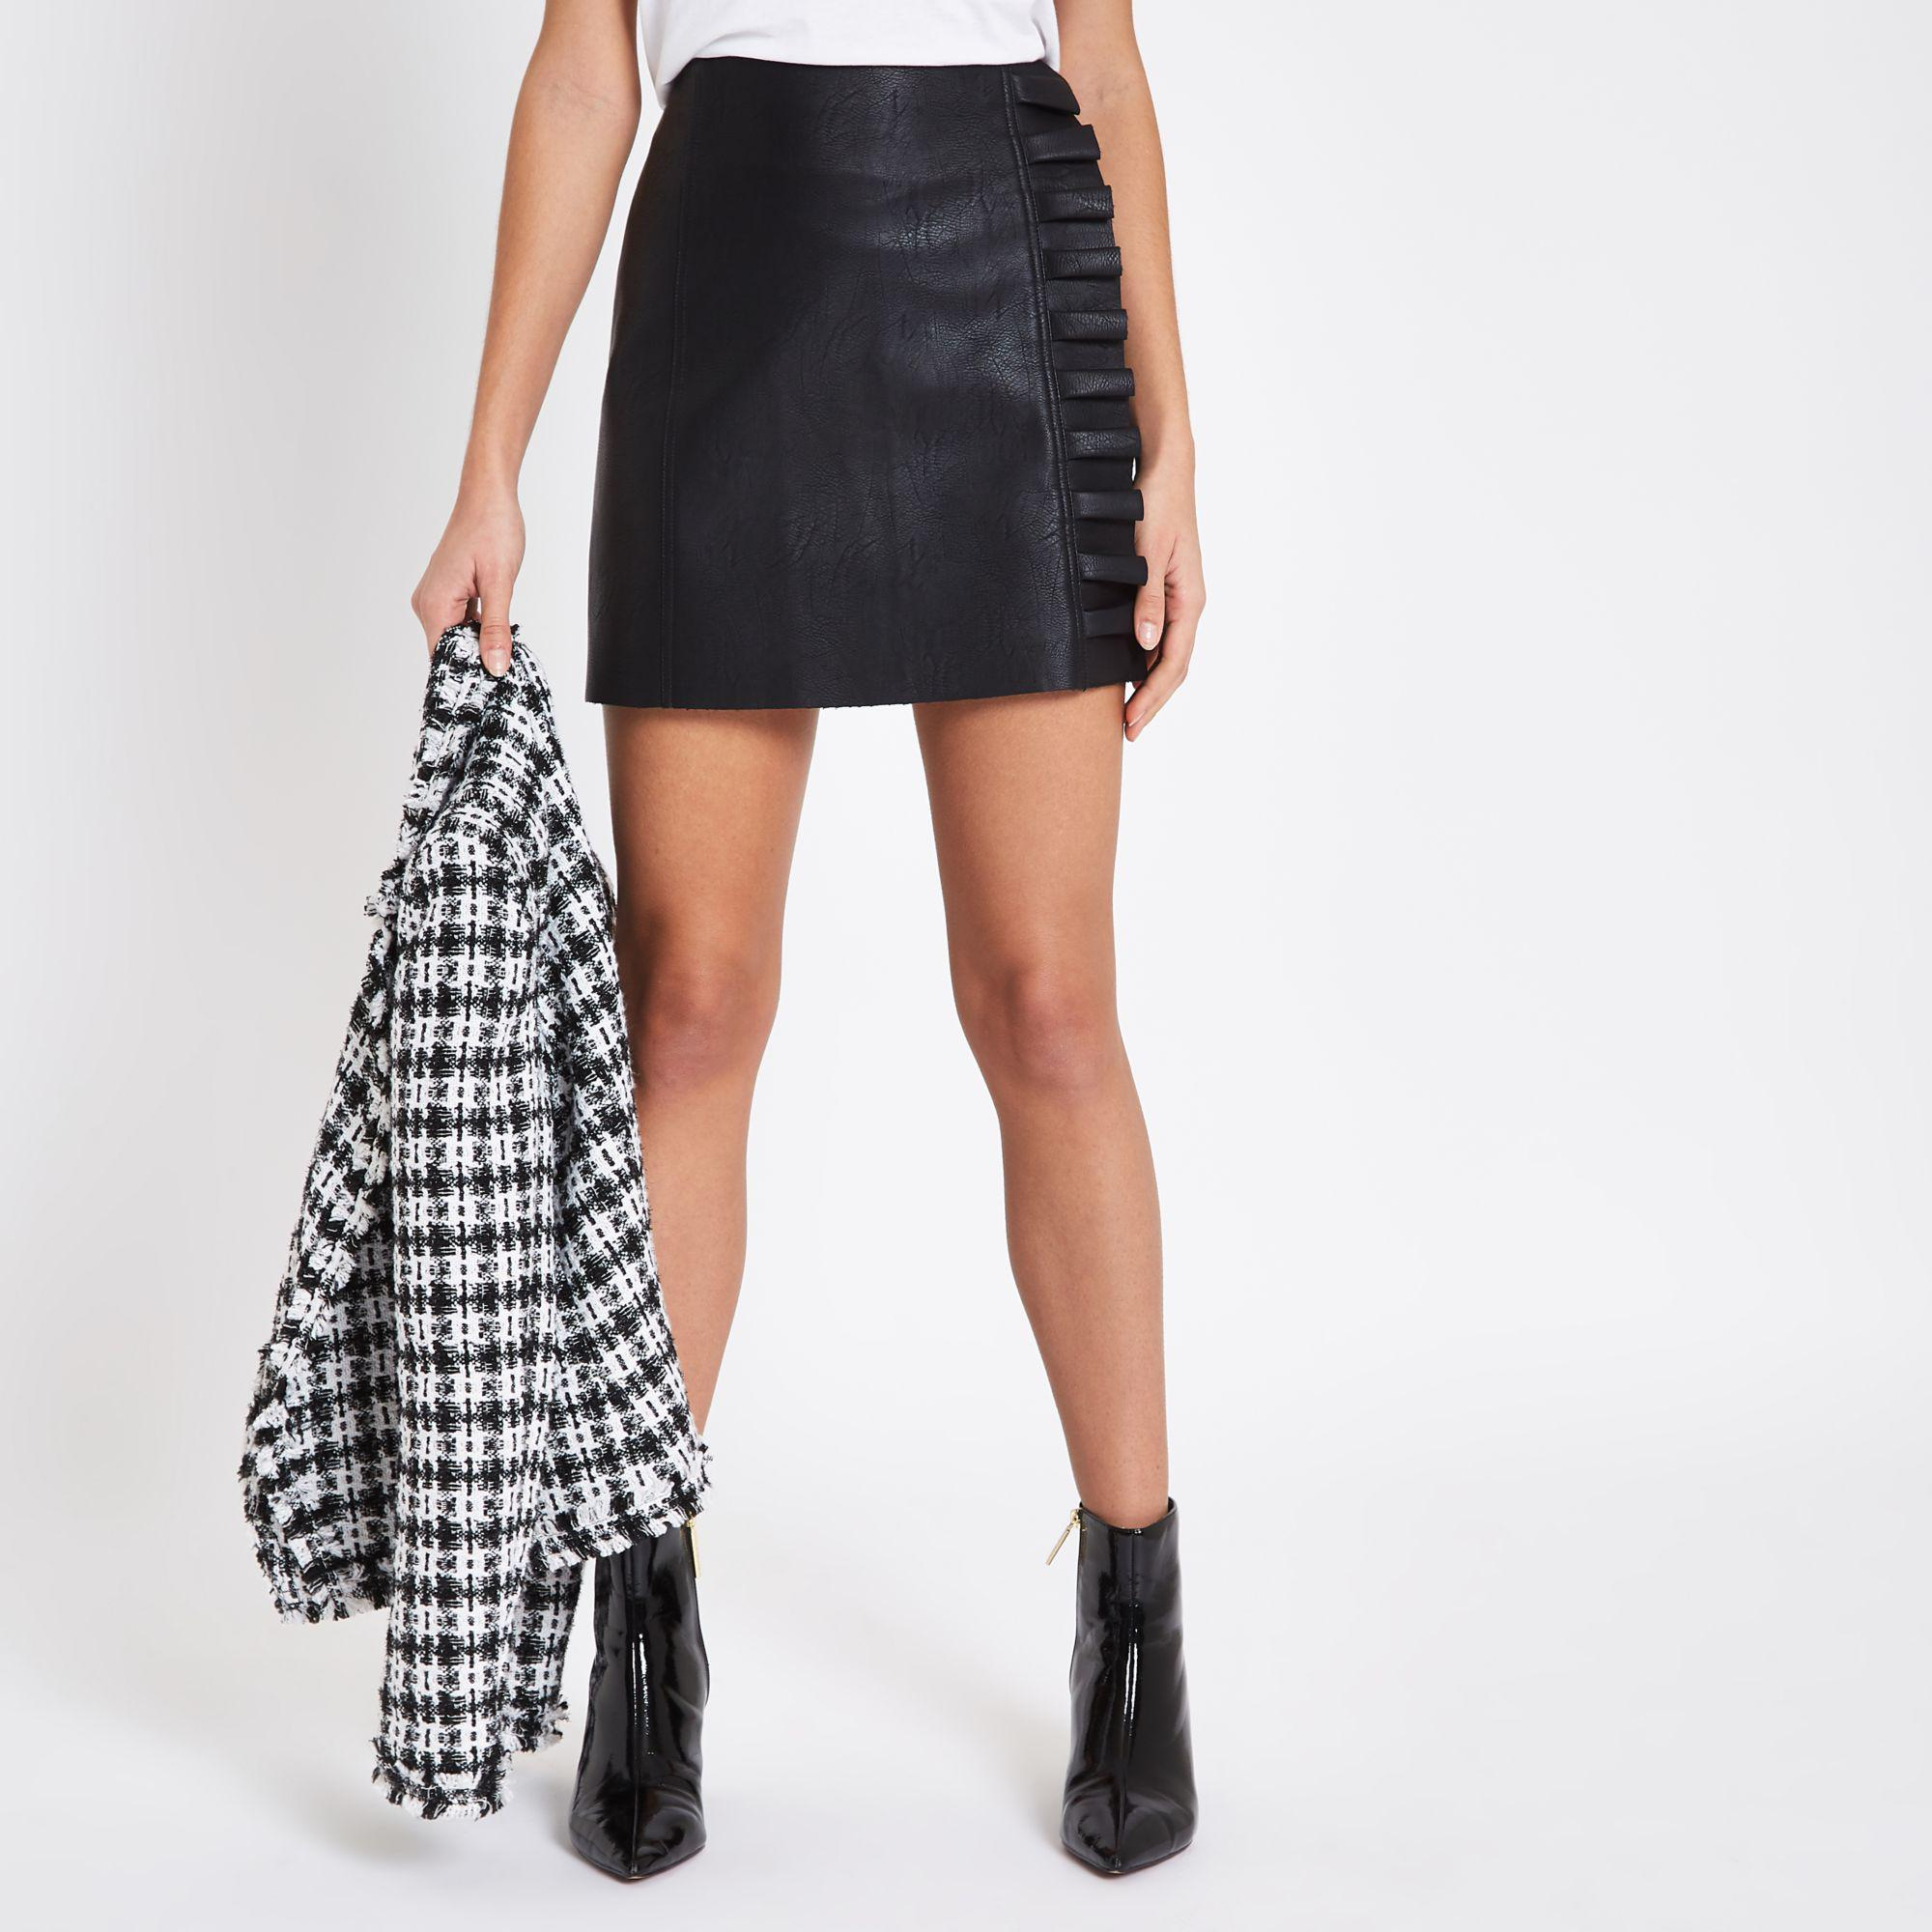 66d38e2b28 River Island Faux Leather Frill Side Mini Skirt in Black - Lyst